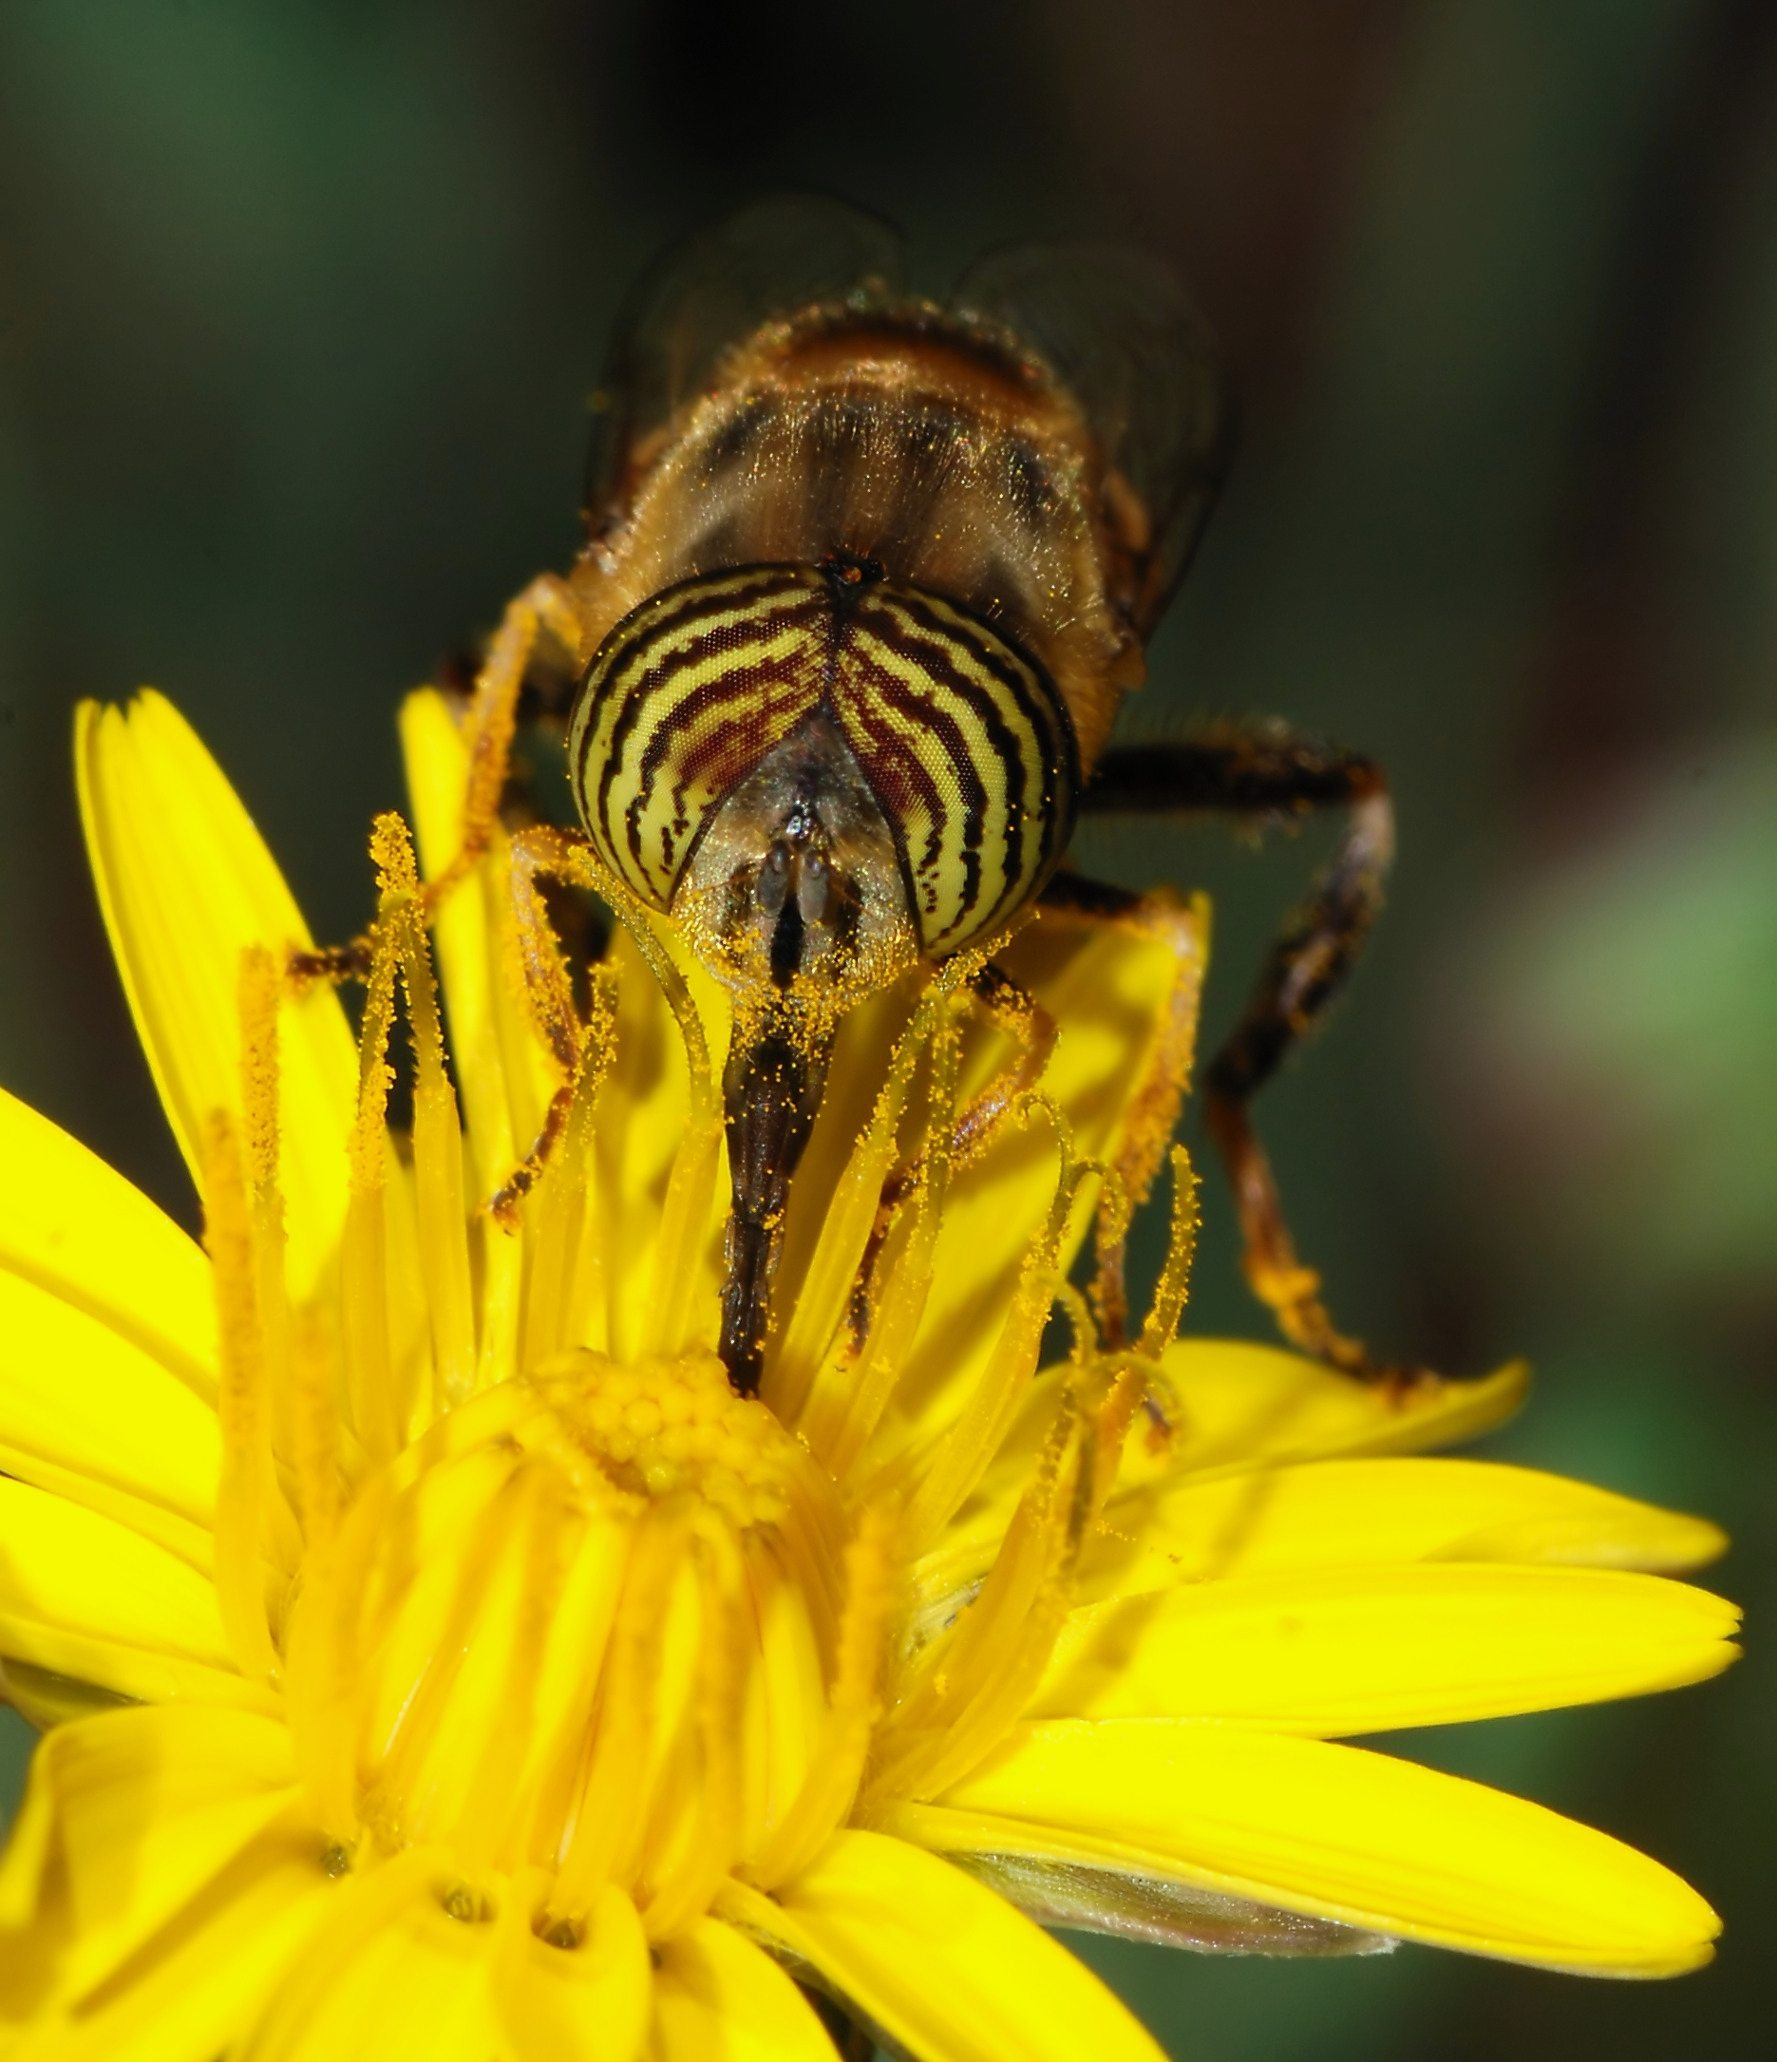 Image: Syrphid Fly pollinating a flower